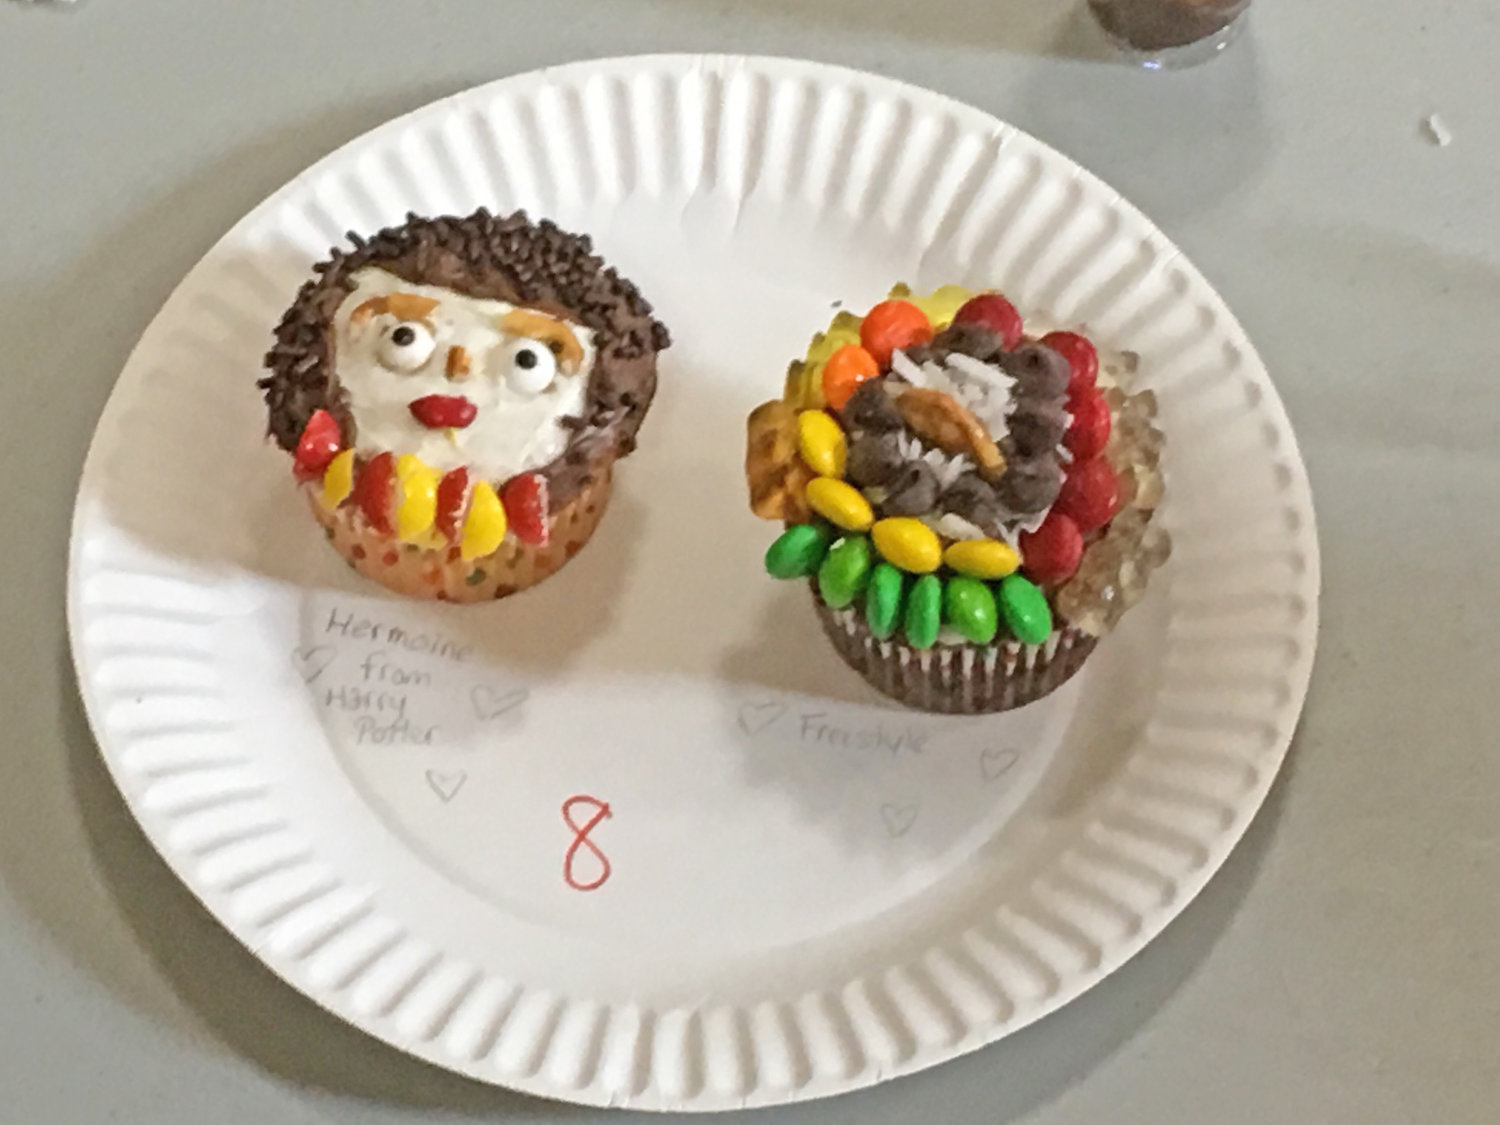 WINNING DESIGN — Hermione, the famous young witch of the Hogwarts School of Witchcraft and Wizardry from the now classic children's book series, Harry Potter, by J.K. Rowling, comes to life through a cupcake at left.